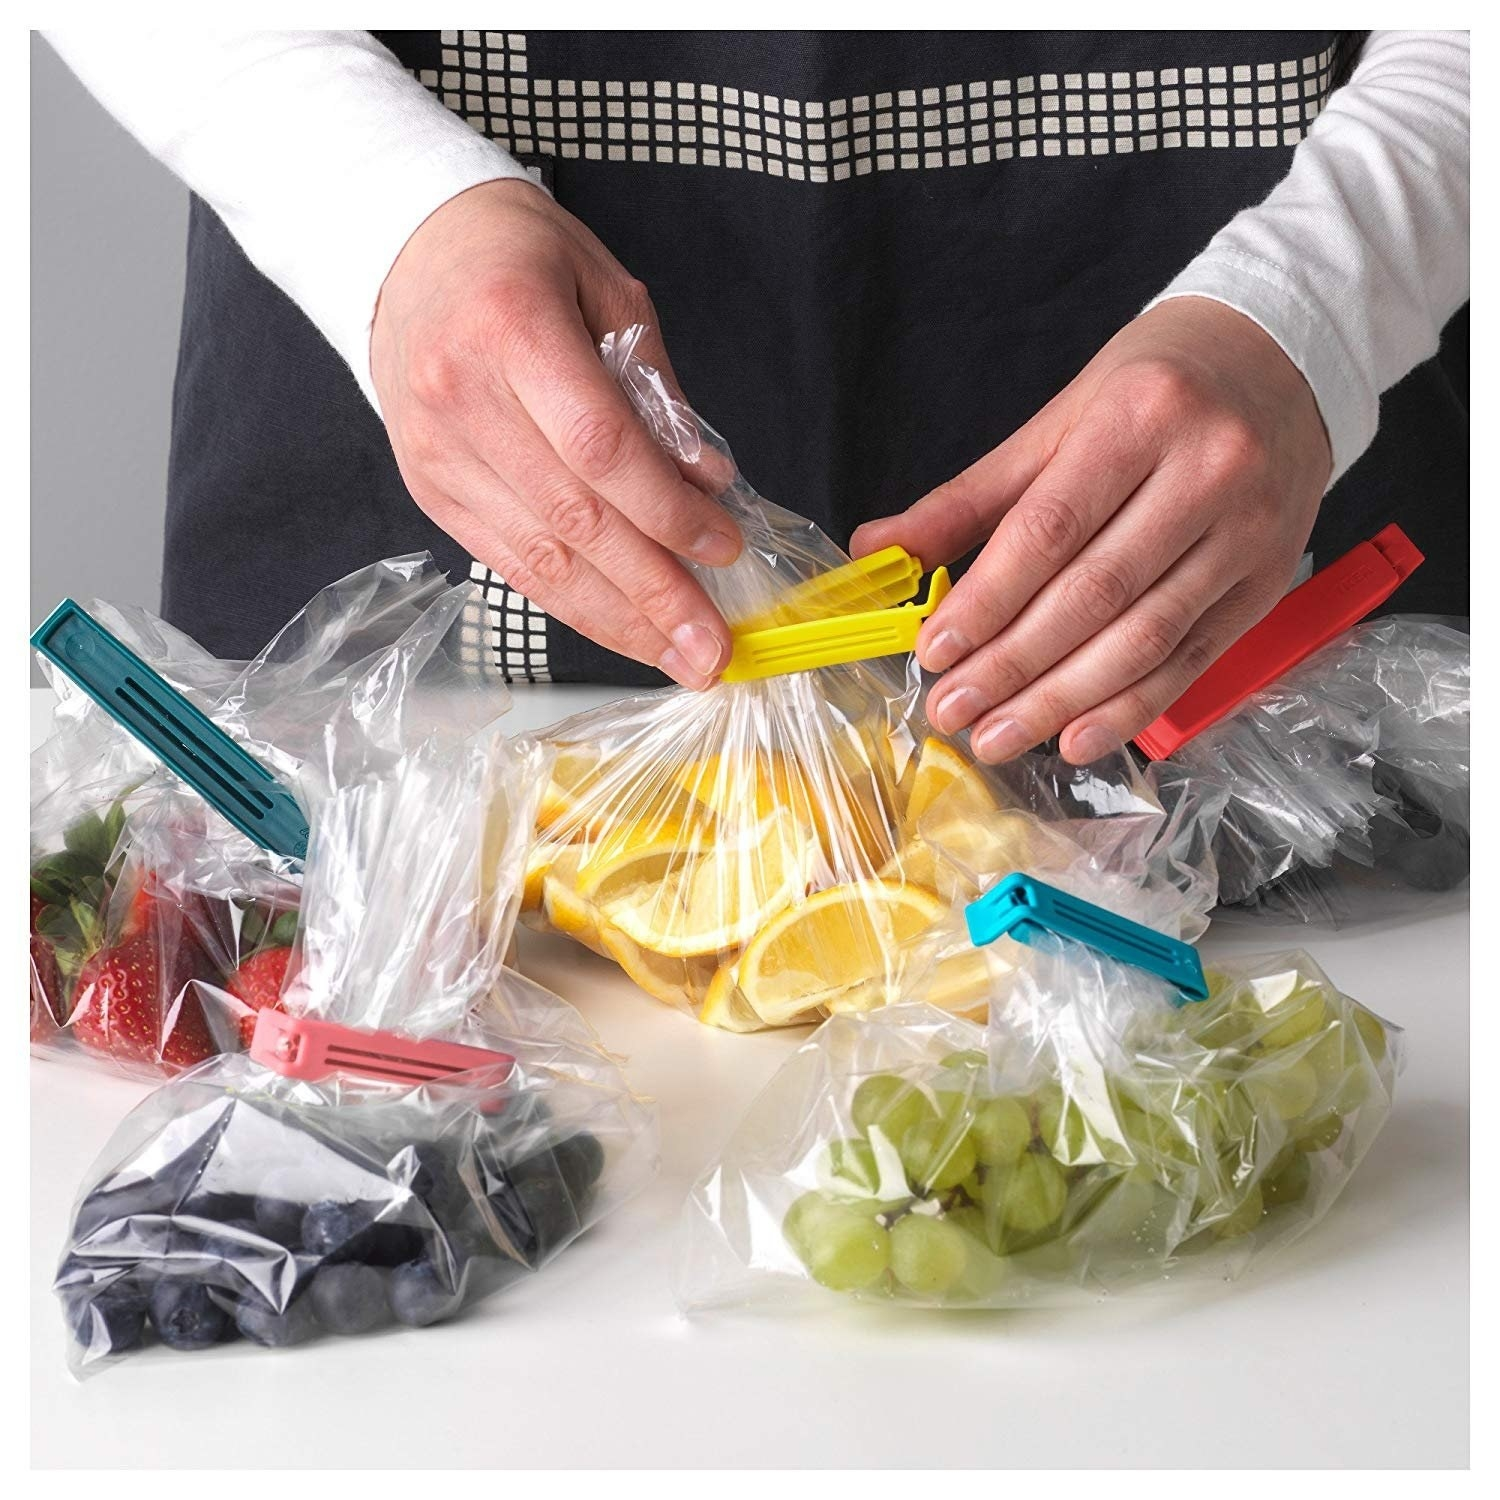 A person clipping plastic bags of fruits.